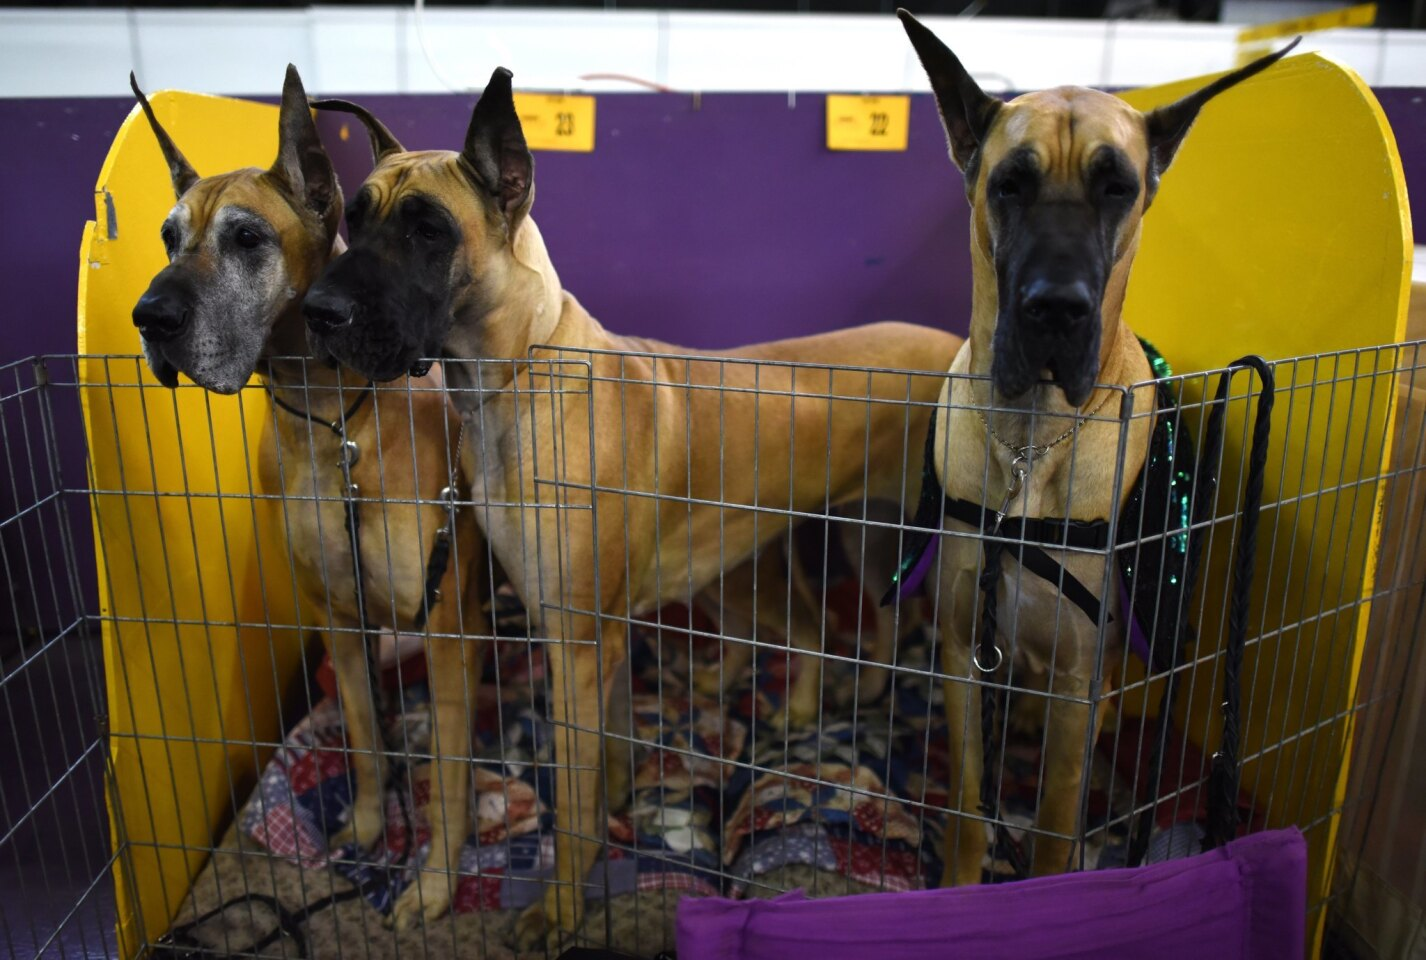 While this breed is very friendly, it does require more regular daily walks than most dogs. Great Danes also tend to bark more than the average canine, don't tolerate being alone well, and shed and drool a lot (not ideal if cleanliness is truly next to godliness for you).